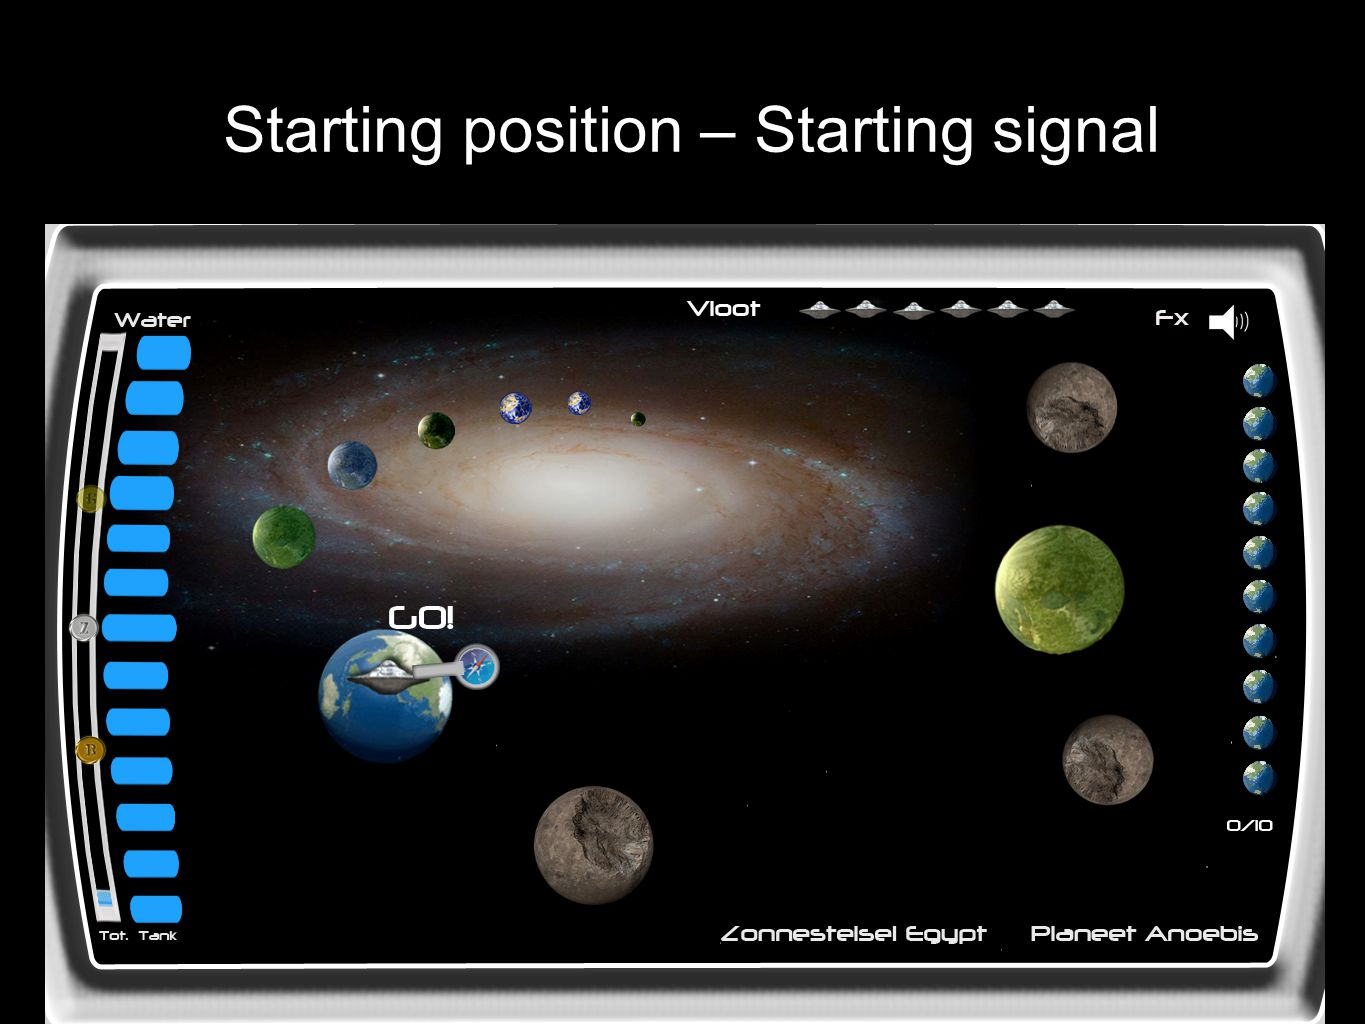 Starting position – Starting signal